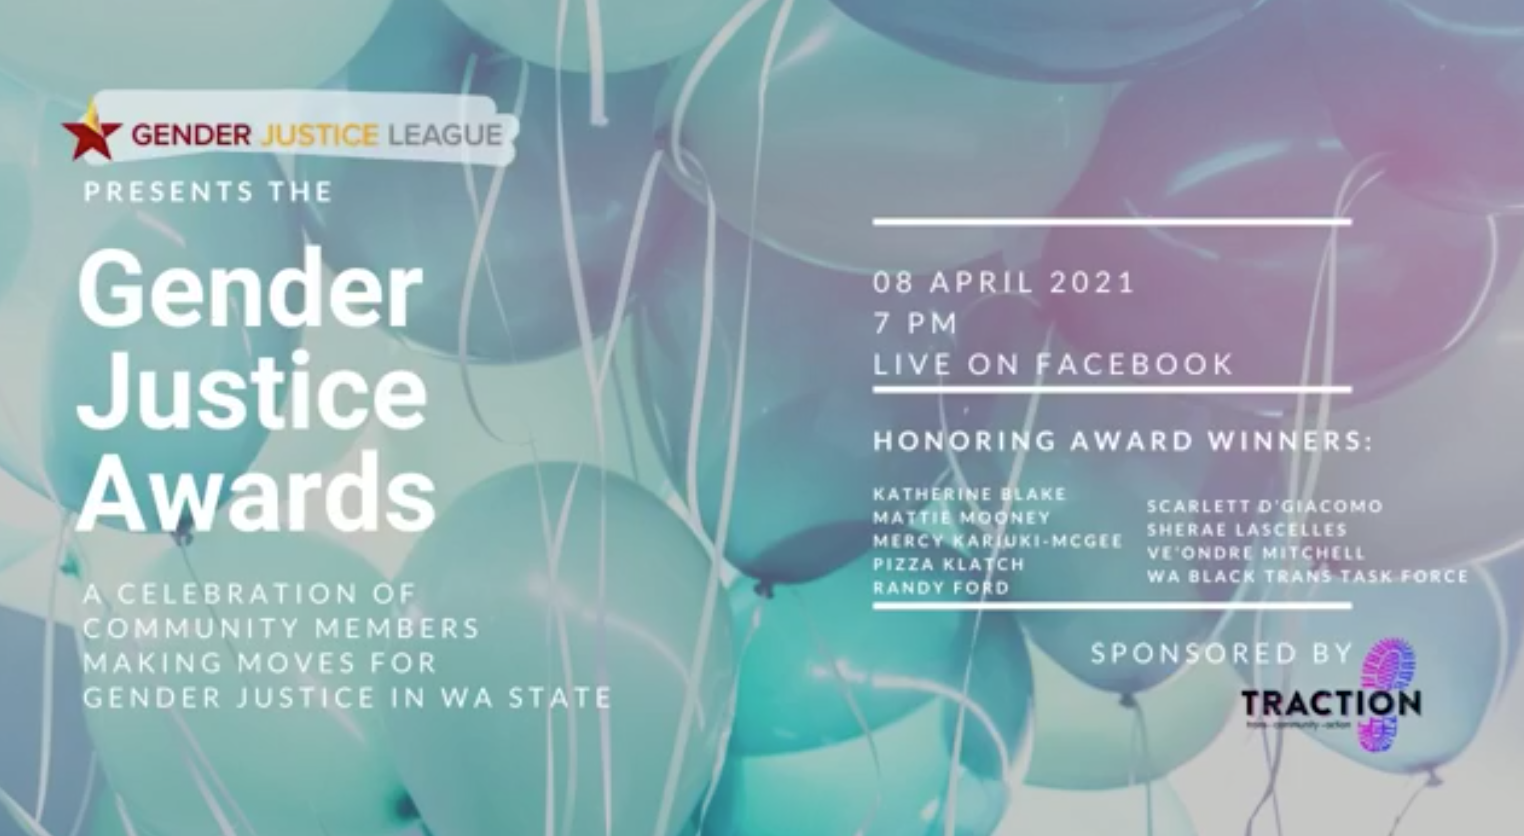 Gender Justice Awards